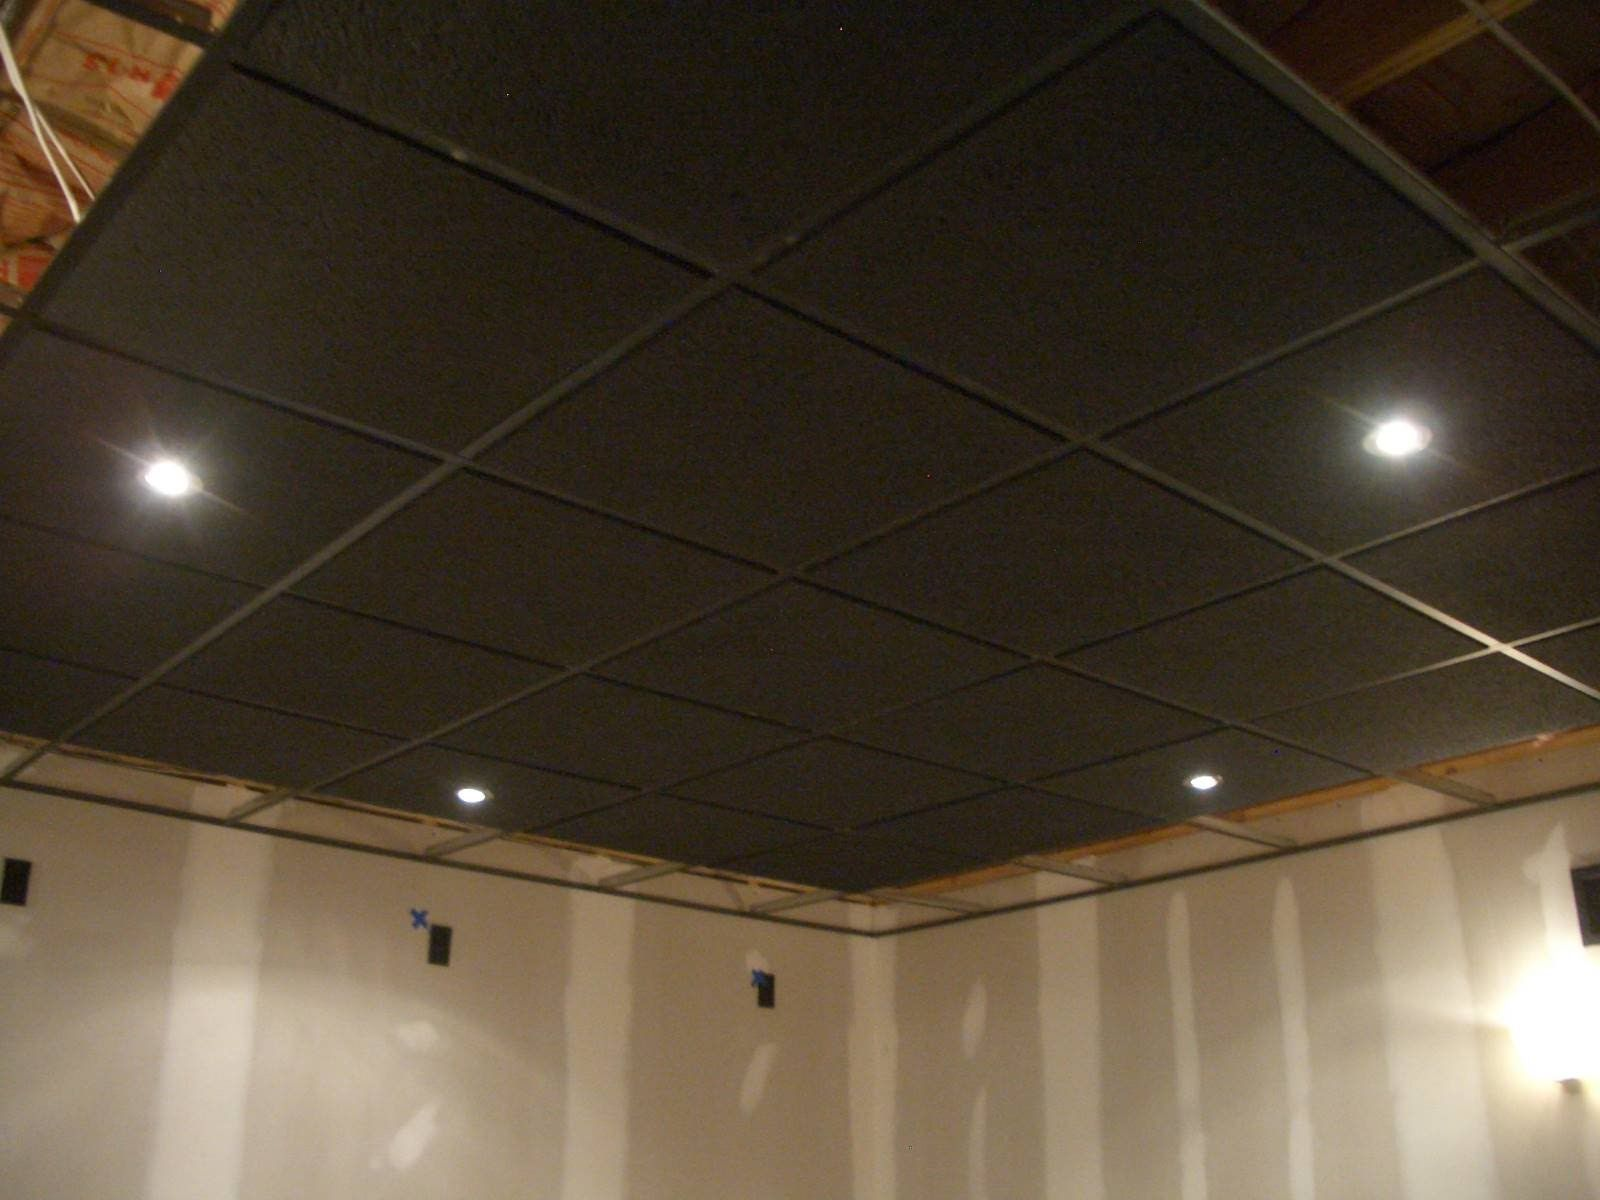 Cool dropped ceiling tiles google search basement ceiling cool dropped ceiling tiles google search dailygadgetfo Images